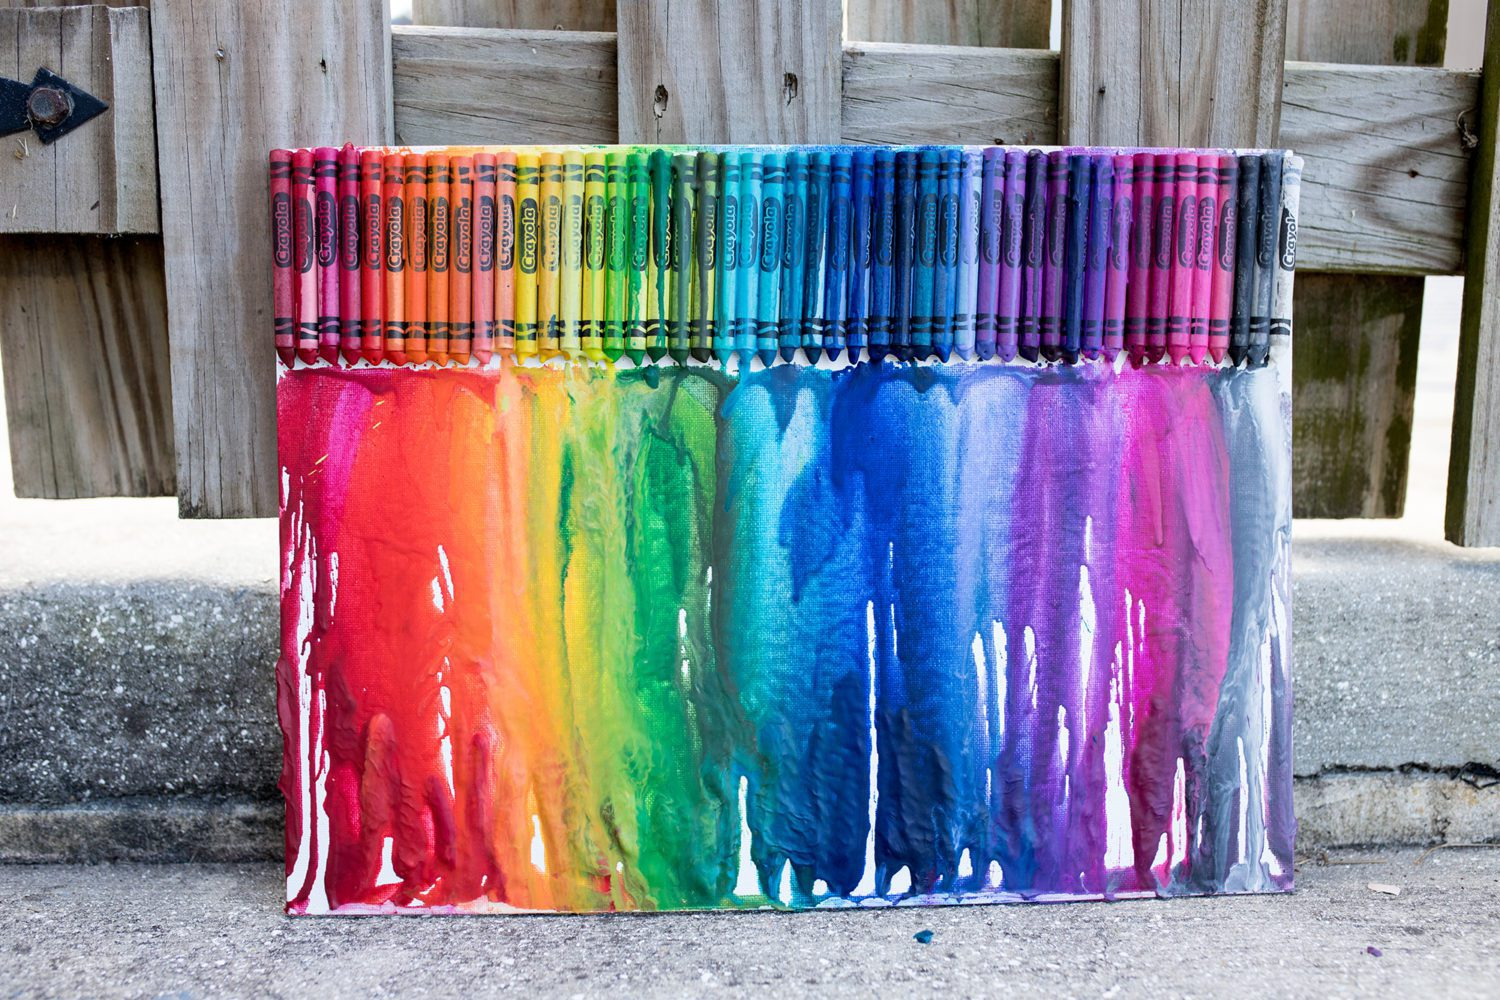 melted crayon art leaning up against a fence